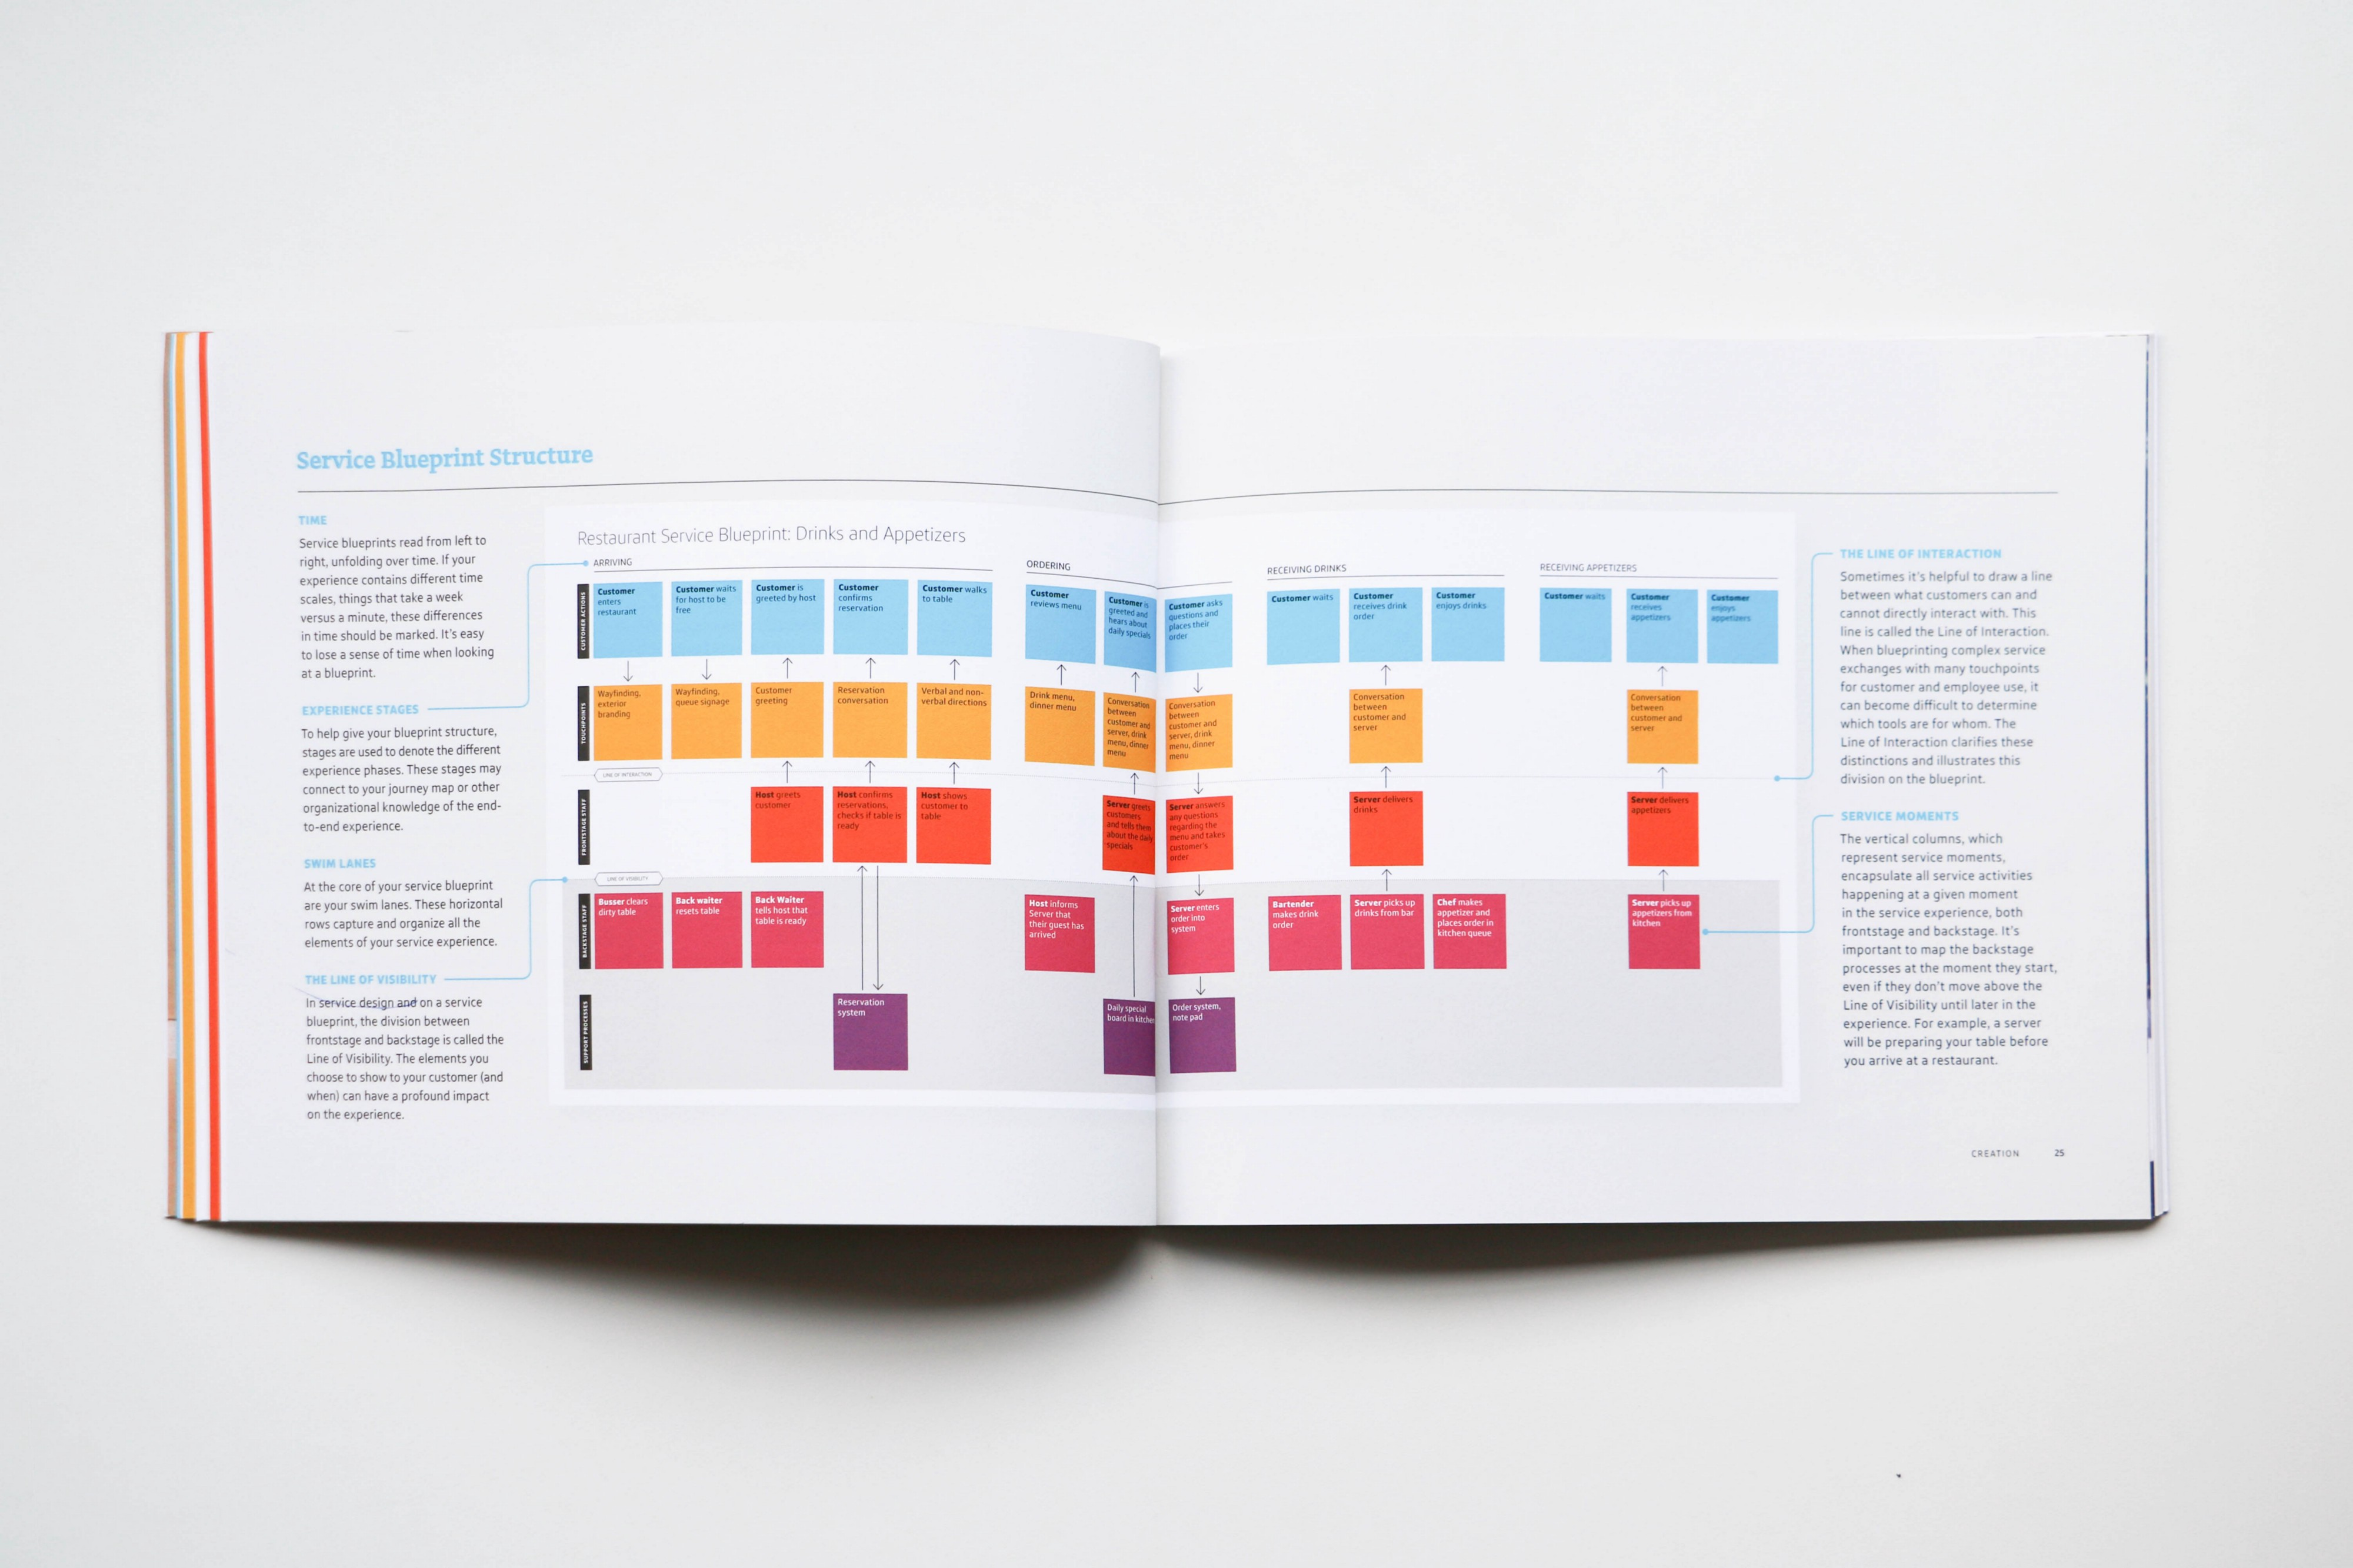 Download Our Guide to Service Blueprinting - One Design